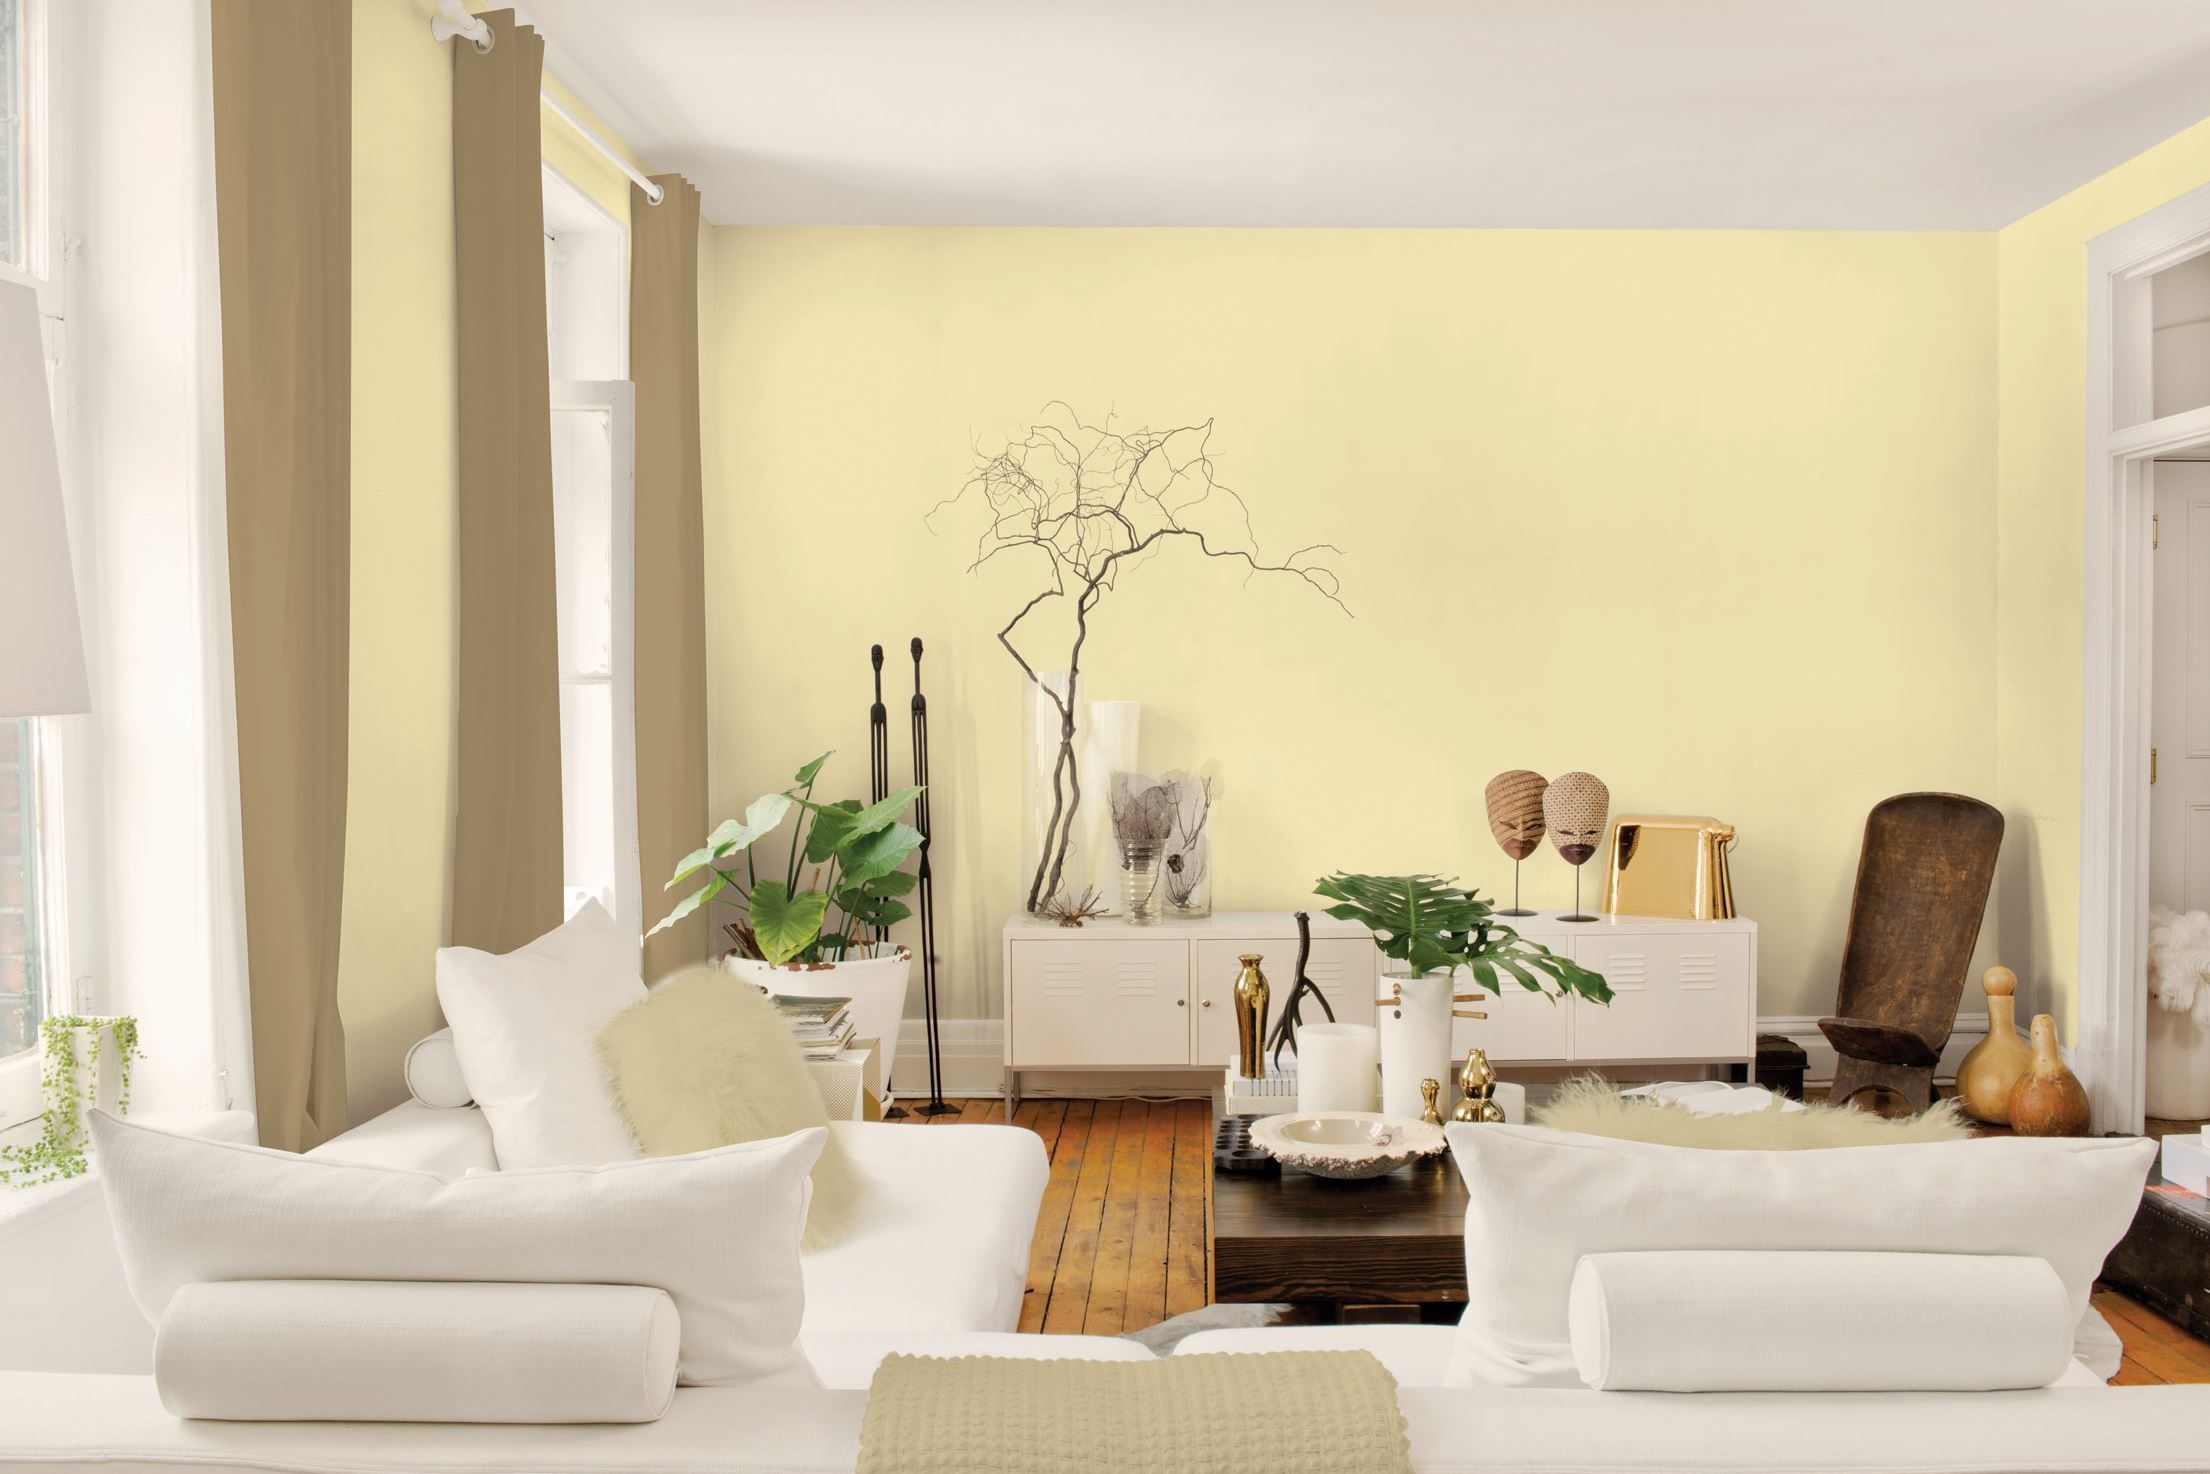 Attirant Inspirations On Paint Colors For Walls   Http://midcityeast.com/inspirations